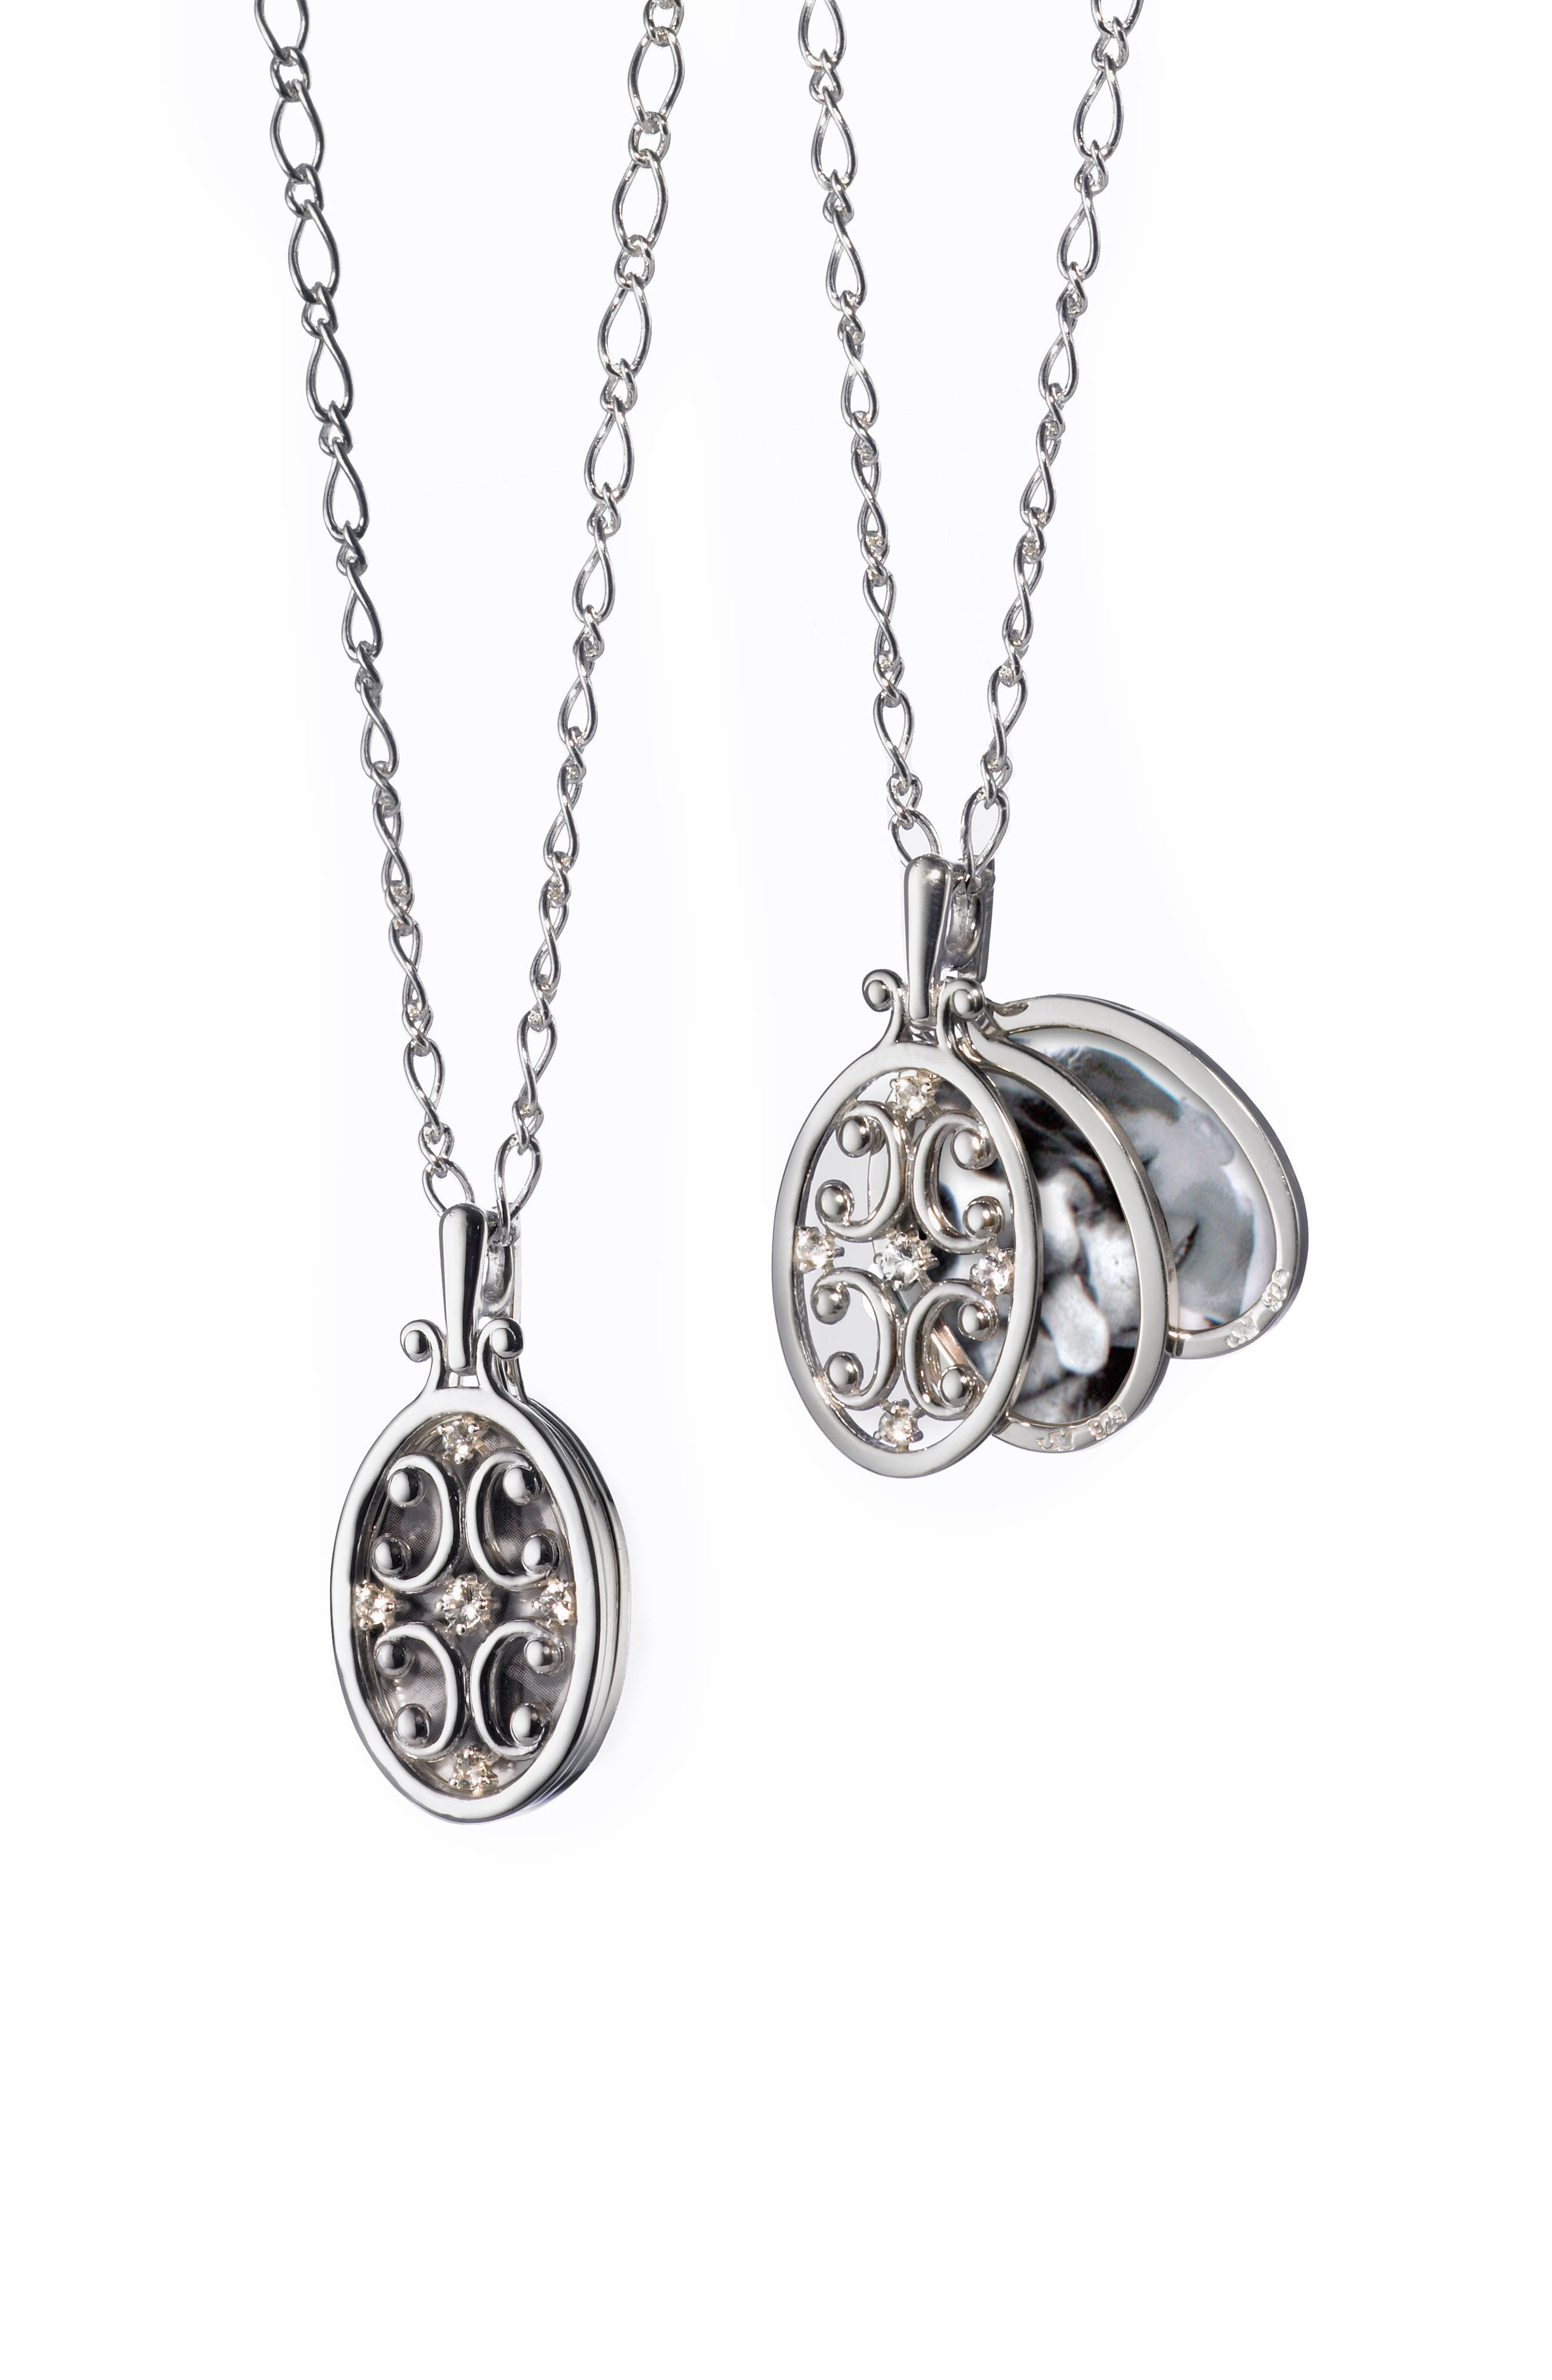 Scrollwork Locket Necklace,                             Main thumbnail 1, color,                             STERLING SILVER